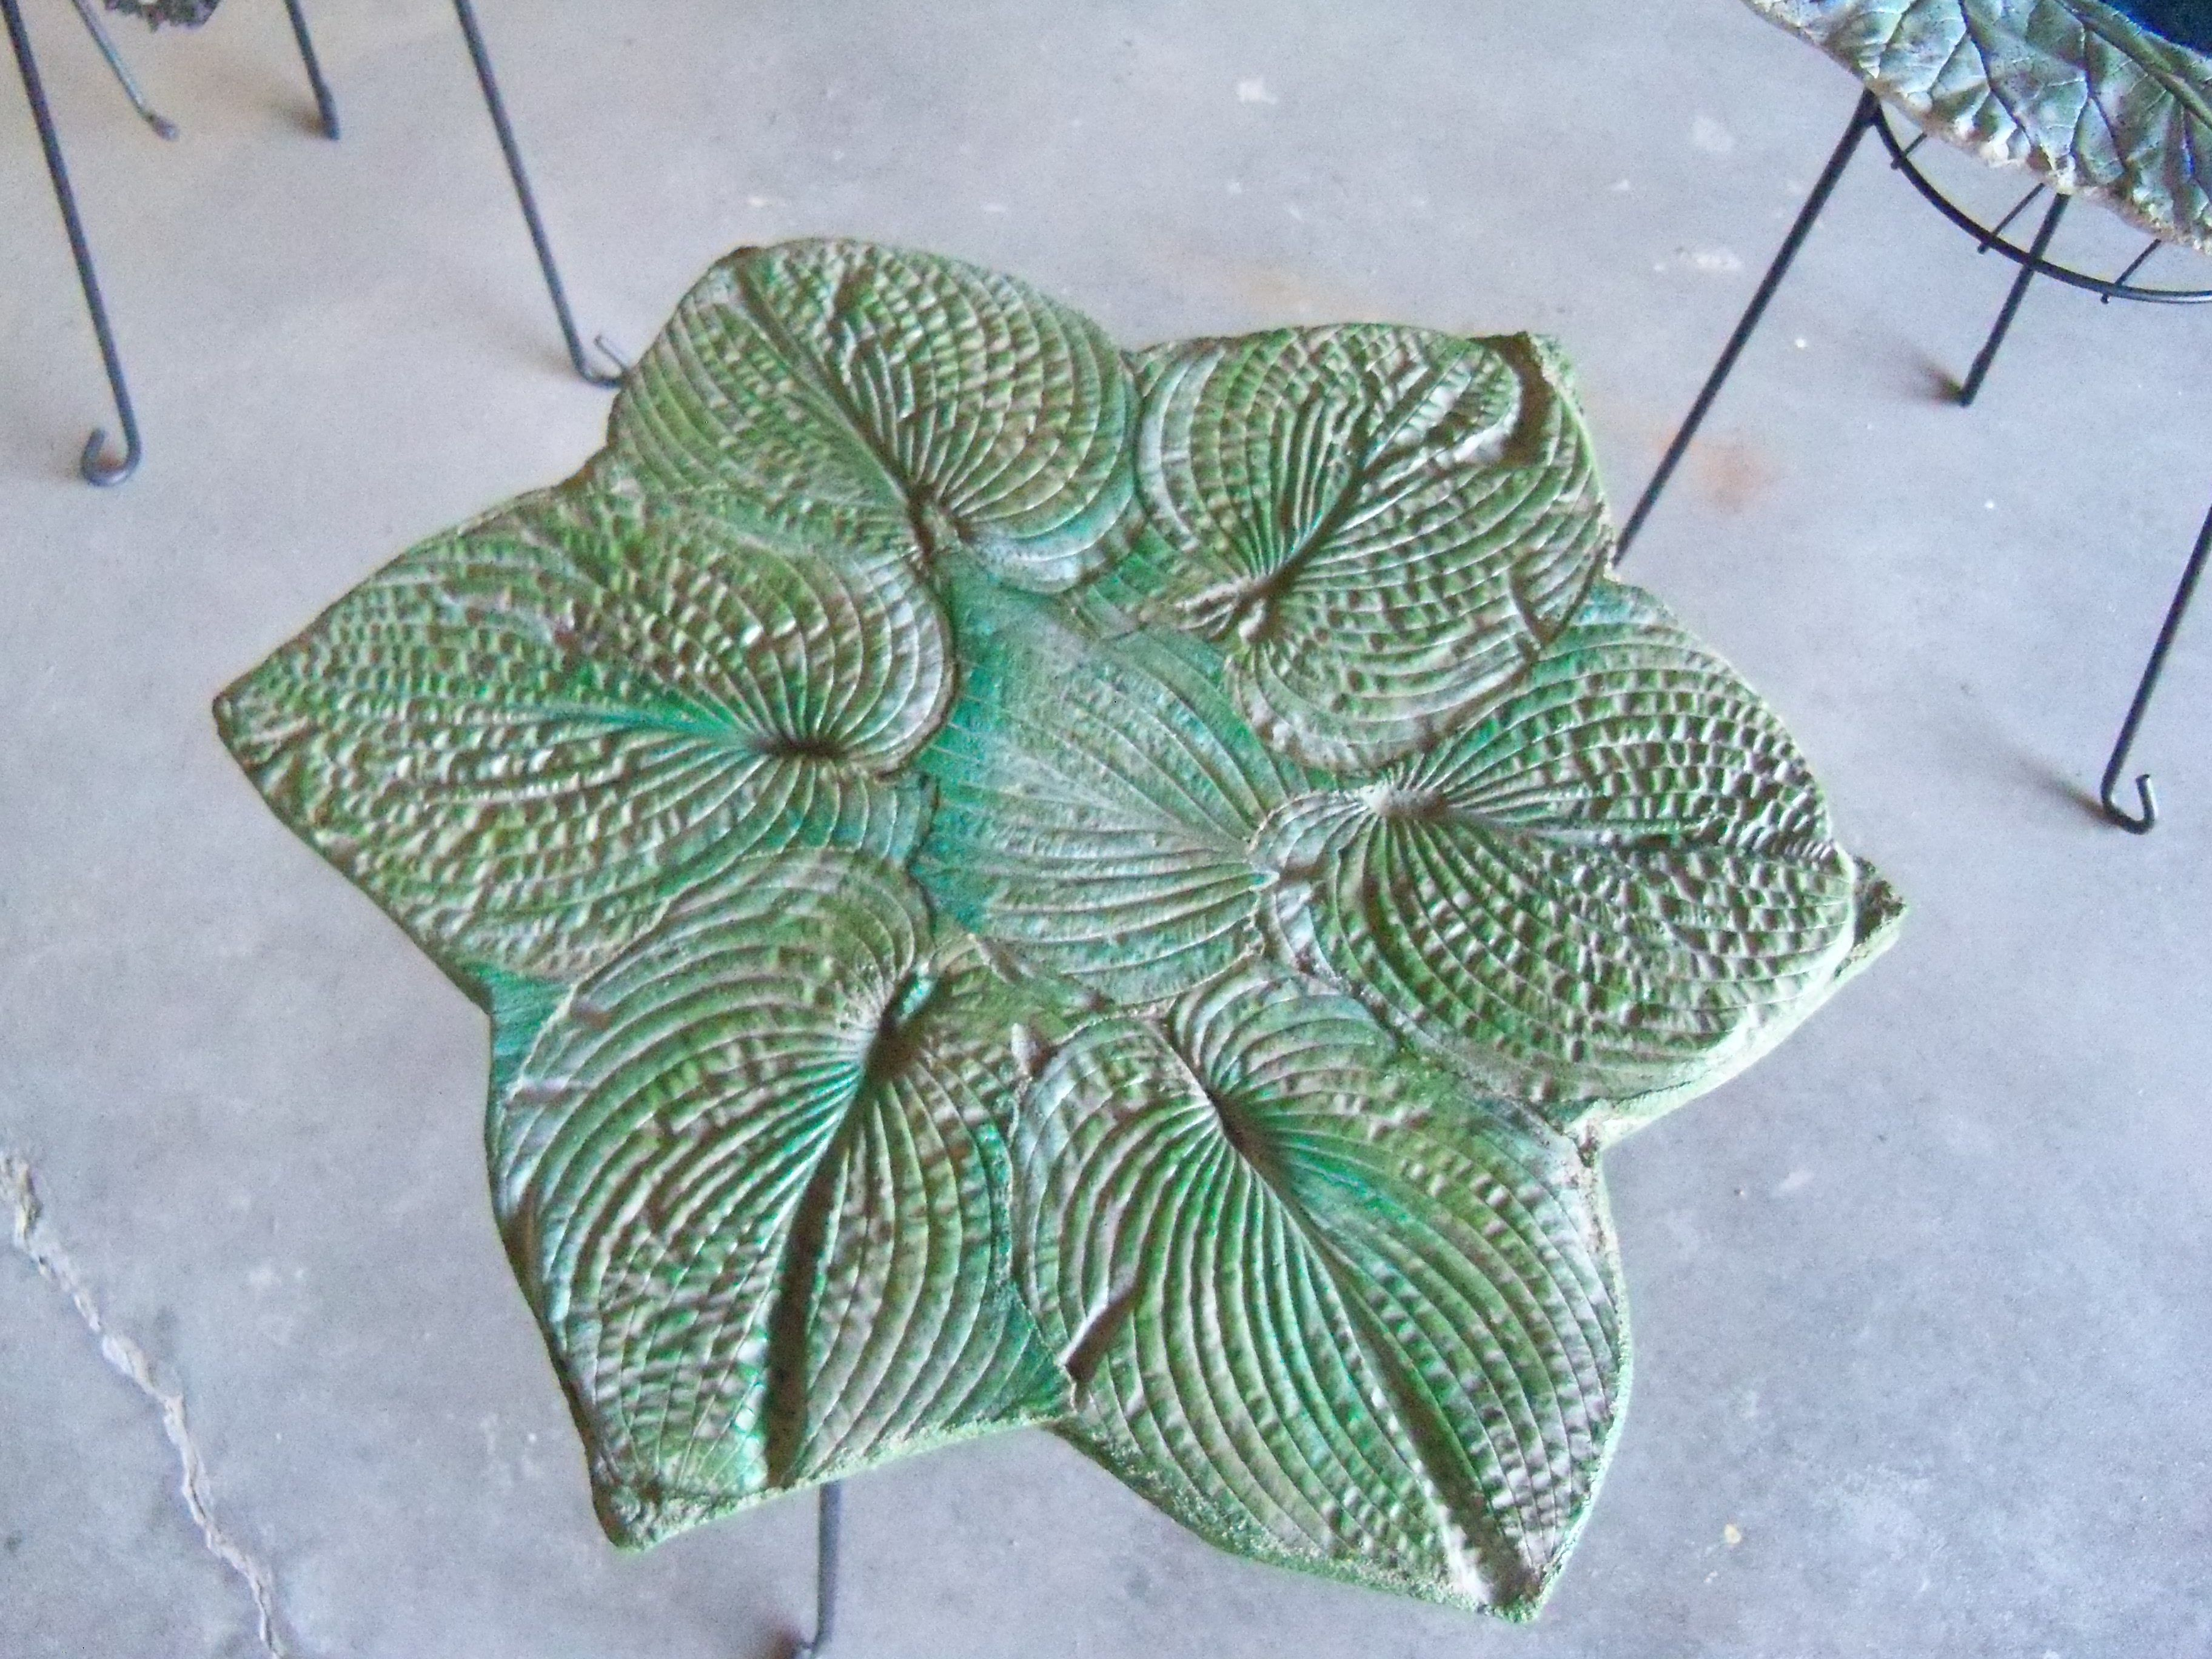 Small Cement Table Top Using Hosta Leaf And Painted In Greens Cement Leaf Casting Cement Leaves Concrete Leaves